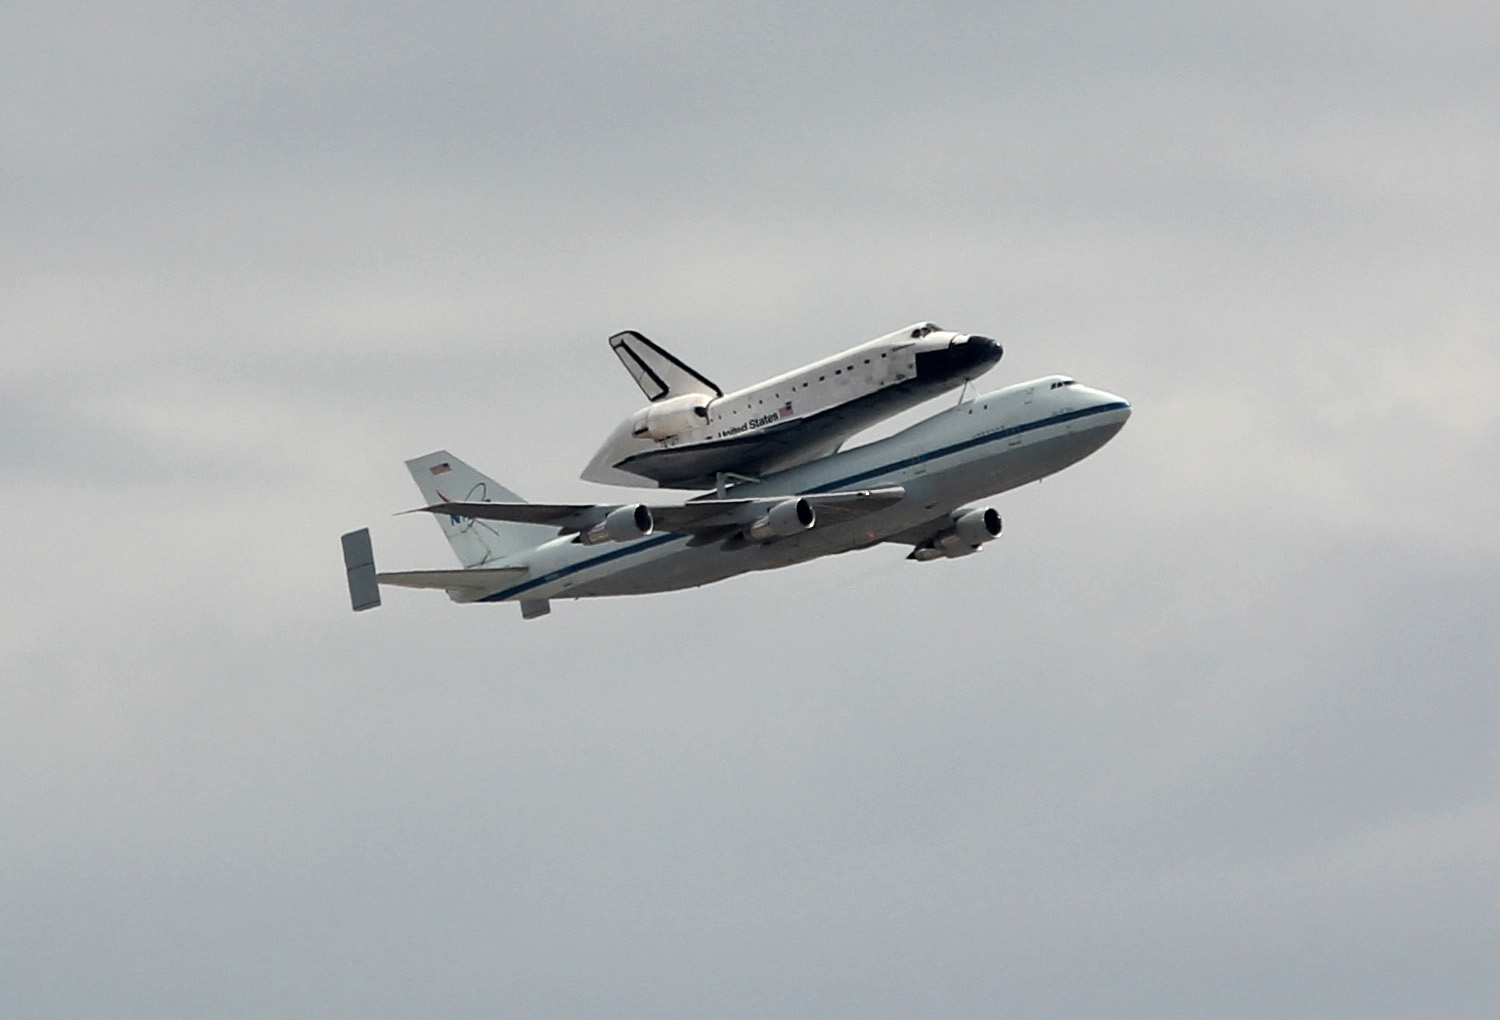 Space Ship Endeavor - Pics about space